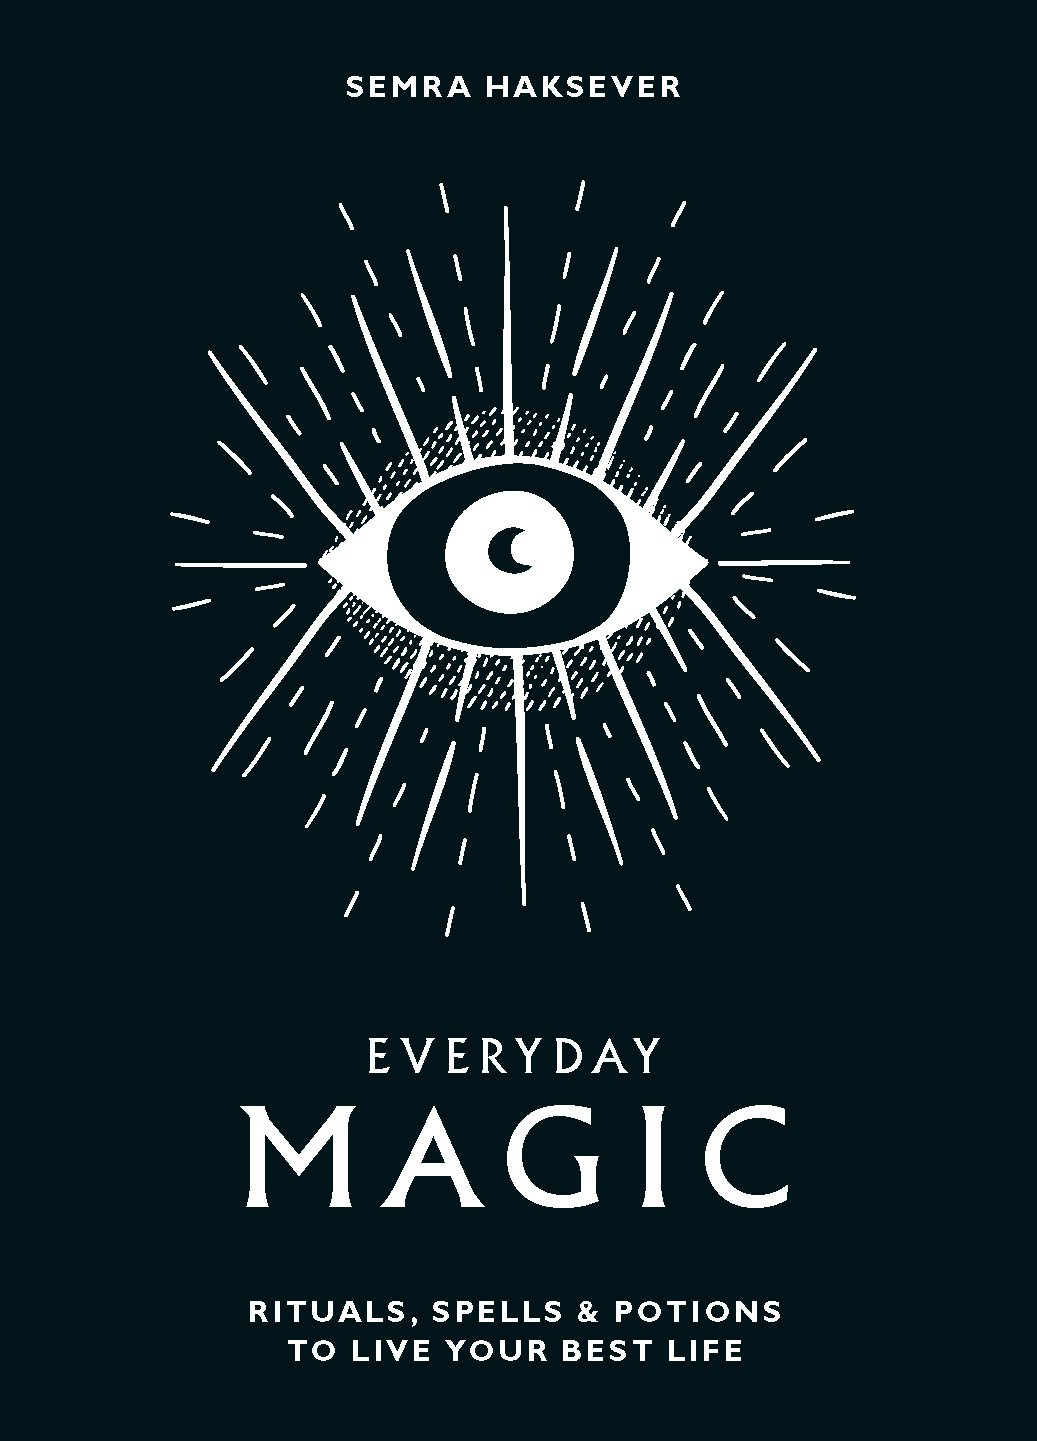 Everyday Magic: Rituals, spells and potions to live your